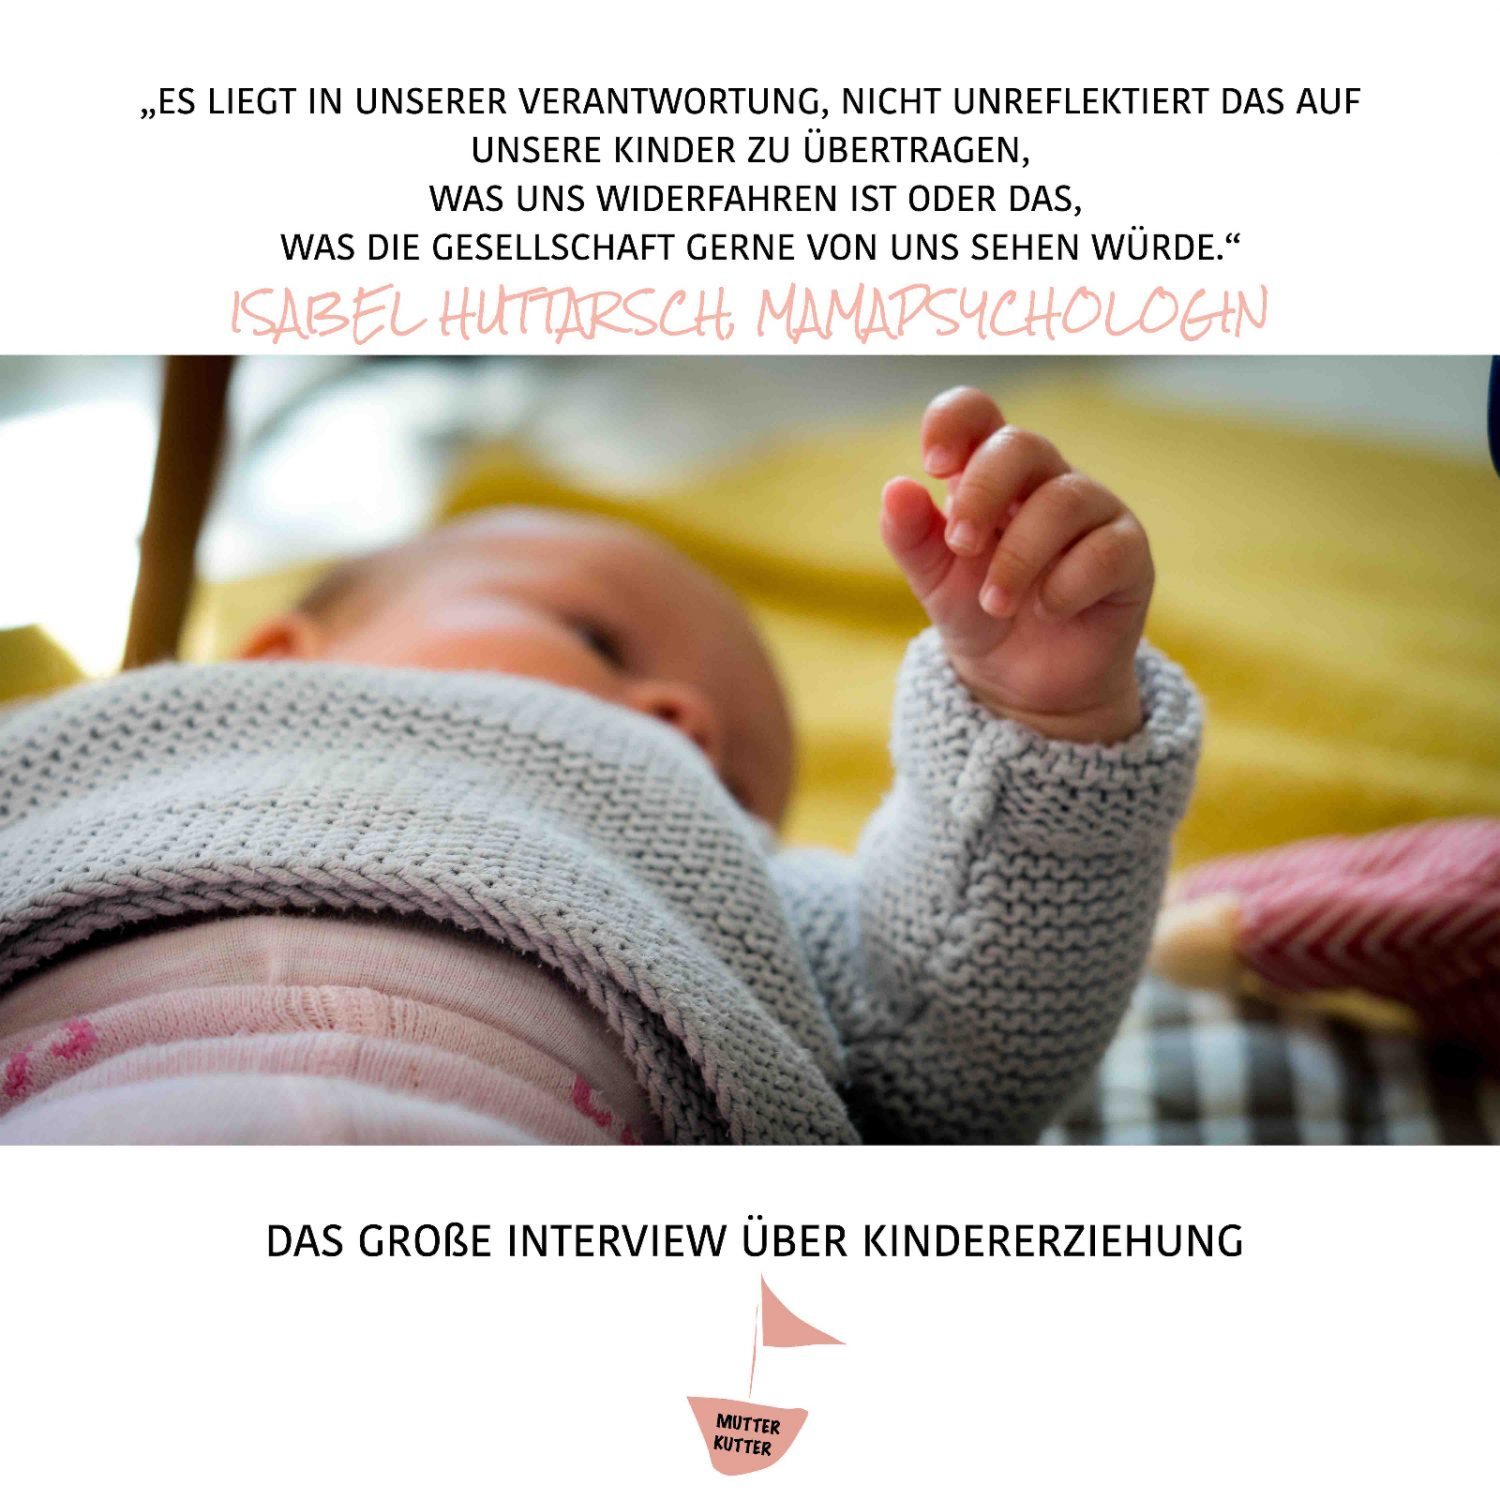 Verantwortung Kindererziehung Interview Mamapsychologin Isabel Huttarsch MutterKutter